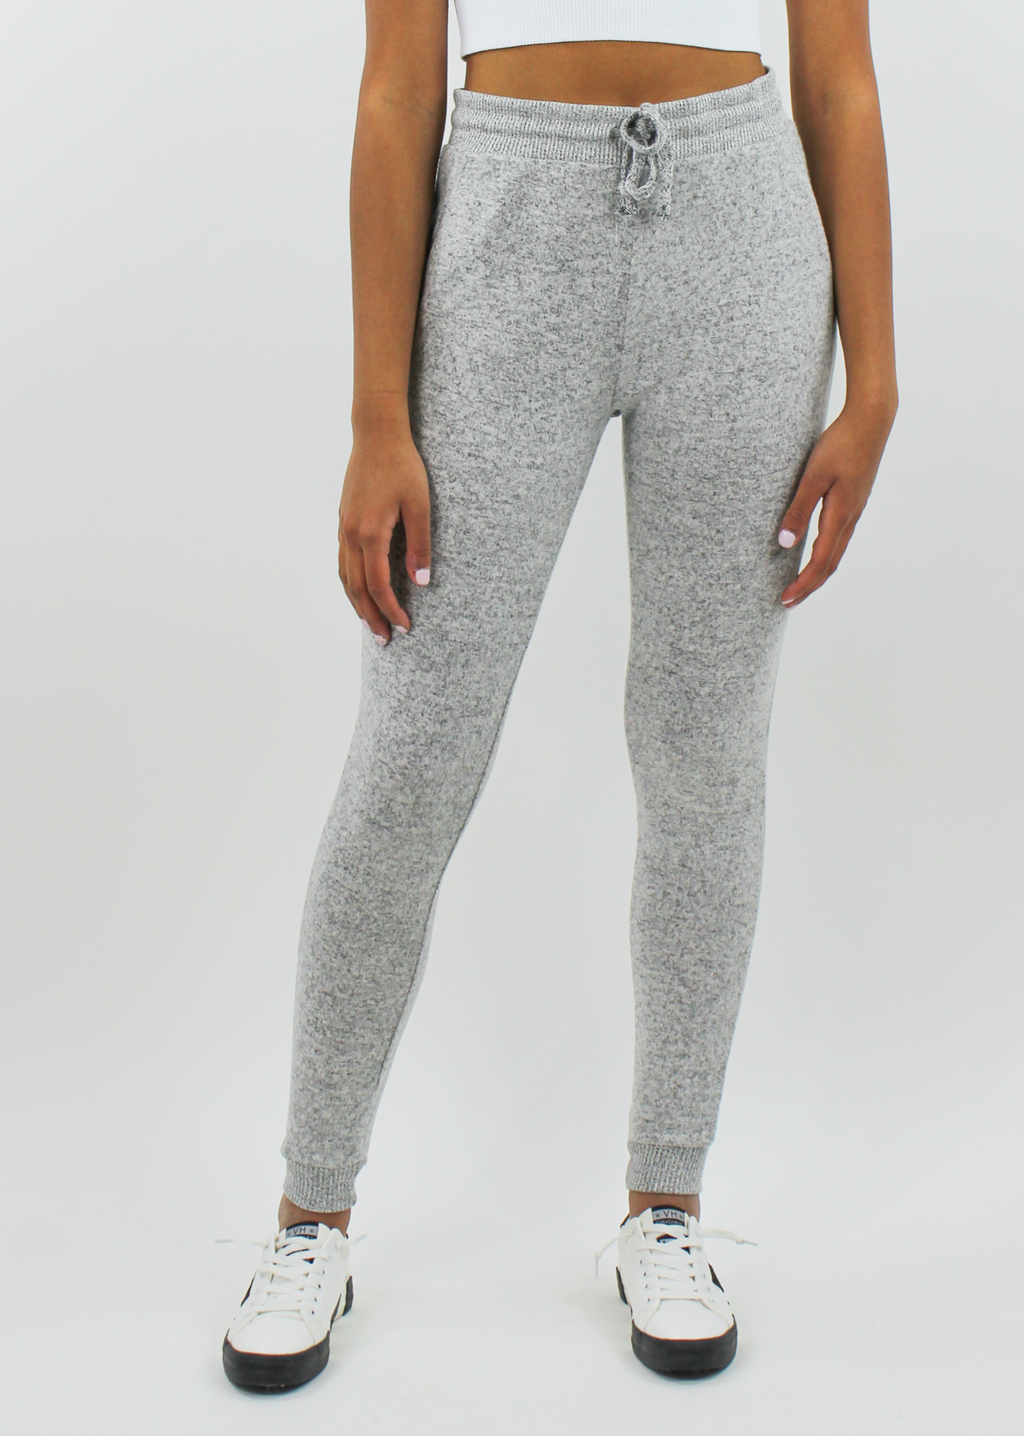 Just The Way You Are Jogger ★ Grey - Rock N Rags